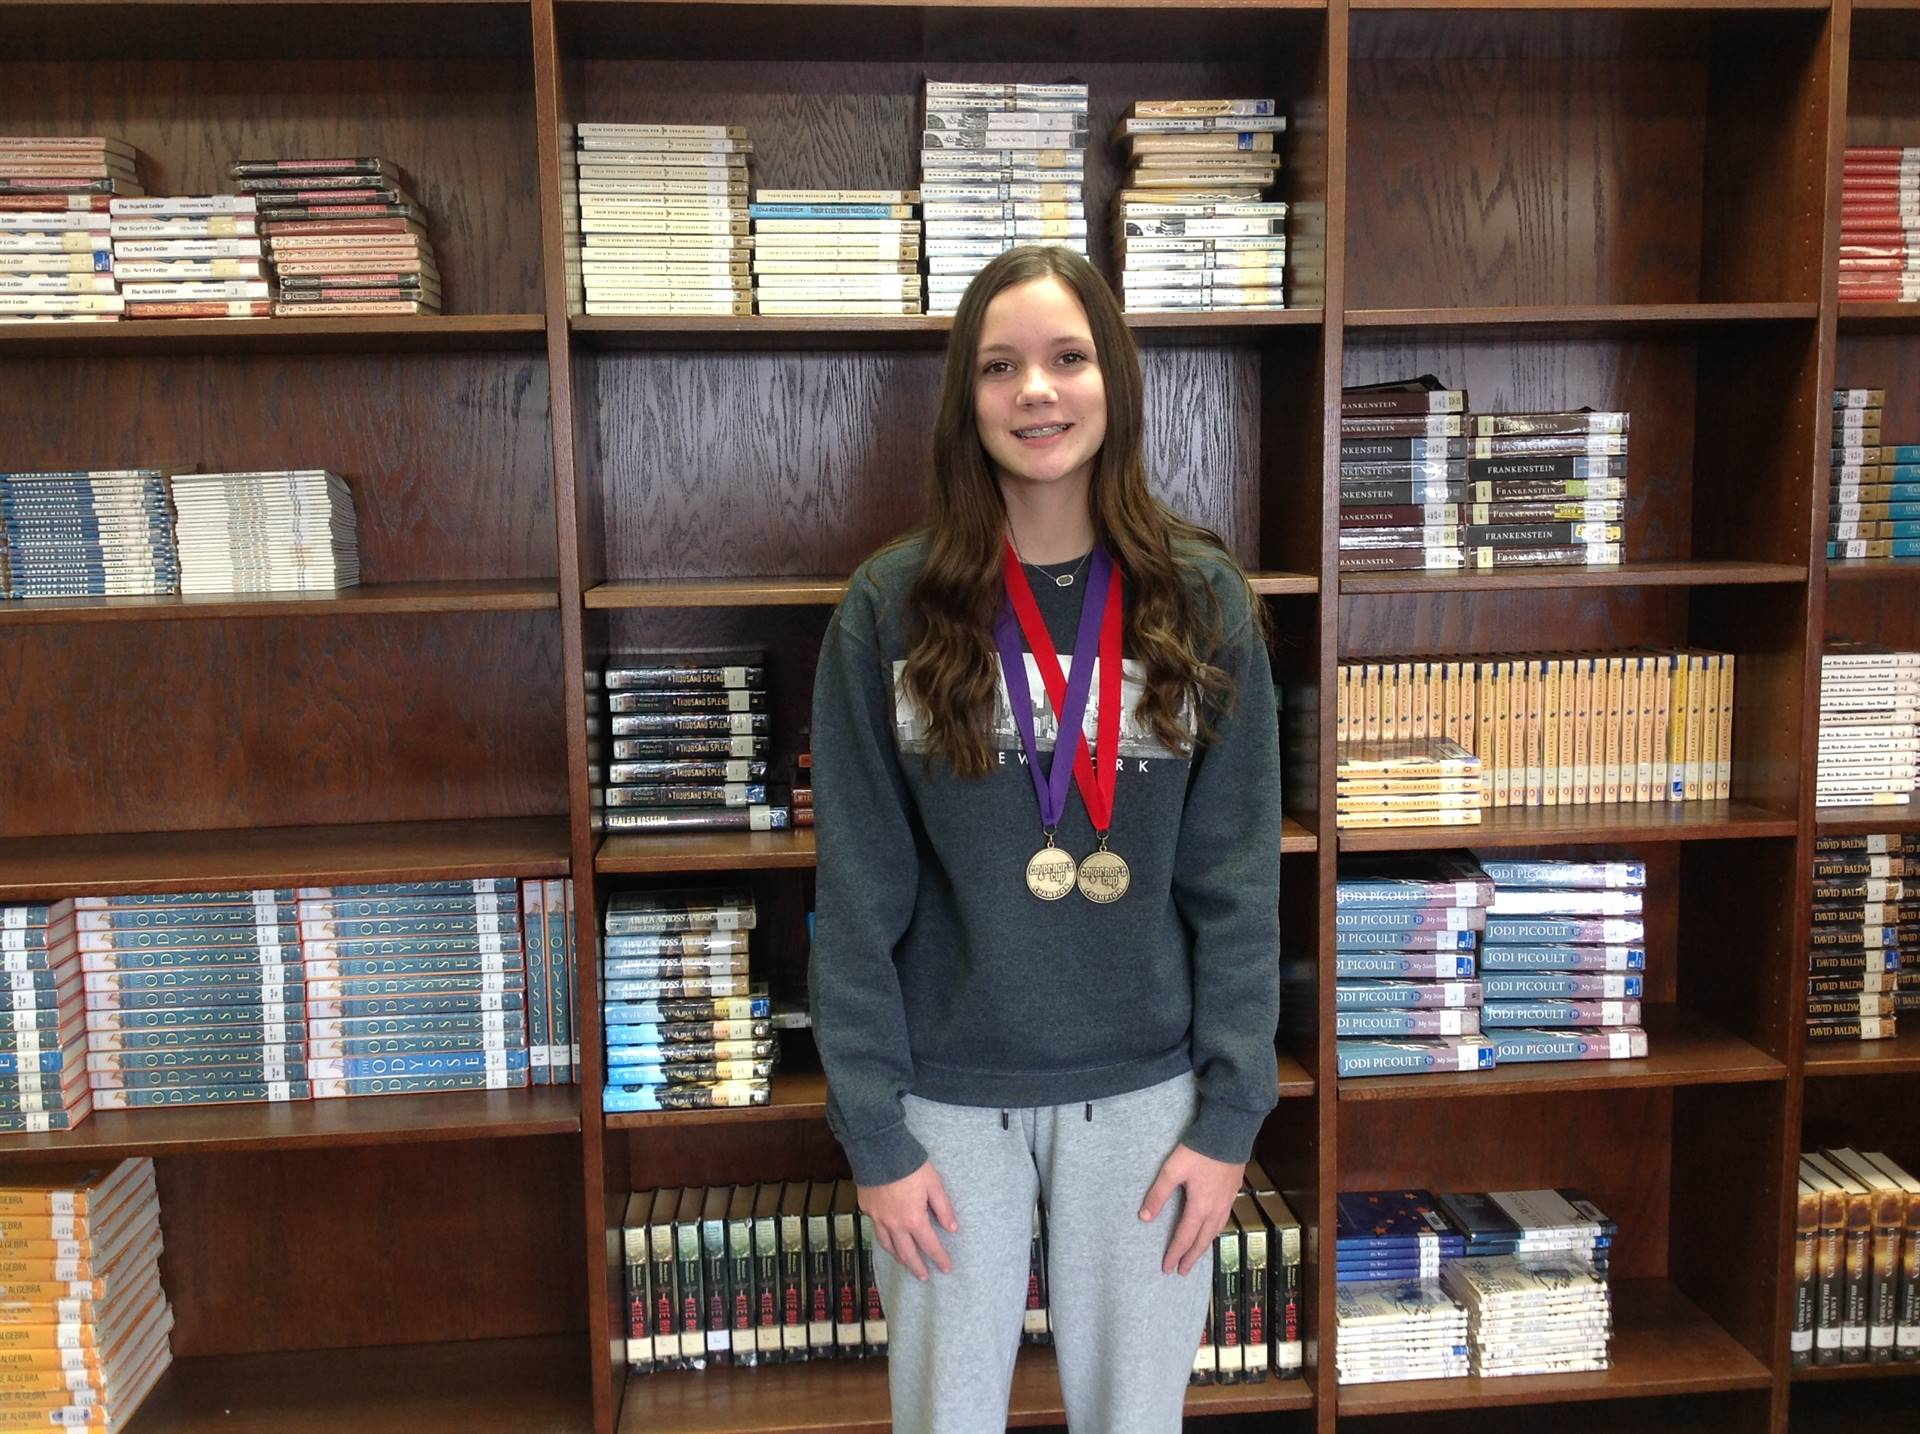 HCMS student displays her medal from District Governor's Cup competition.